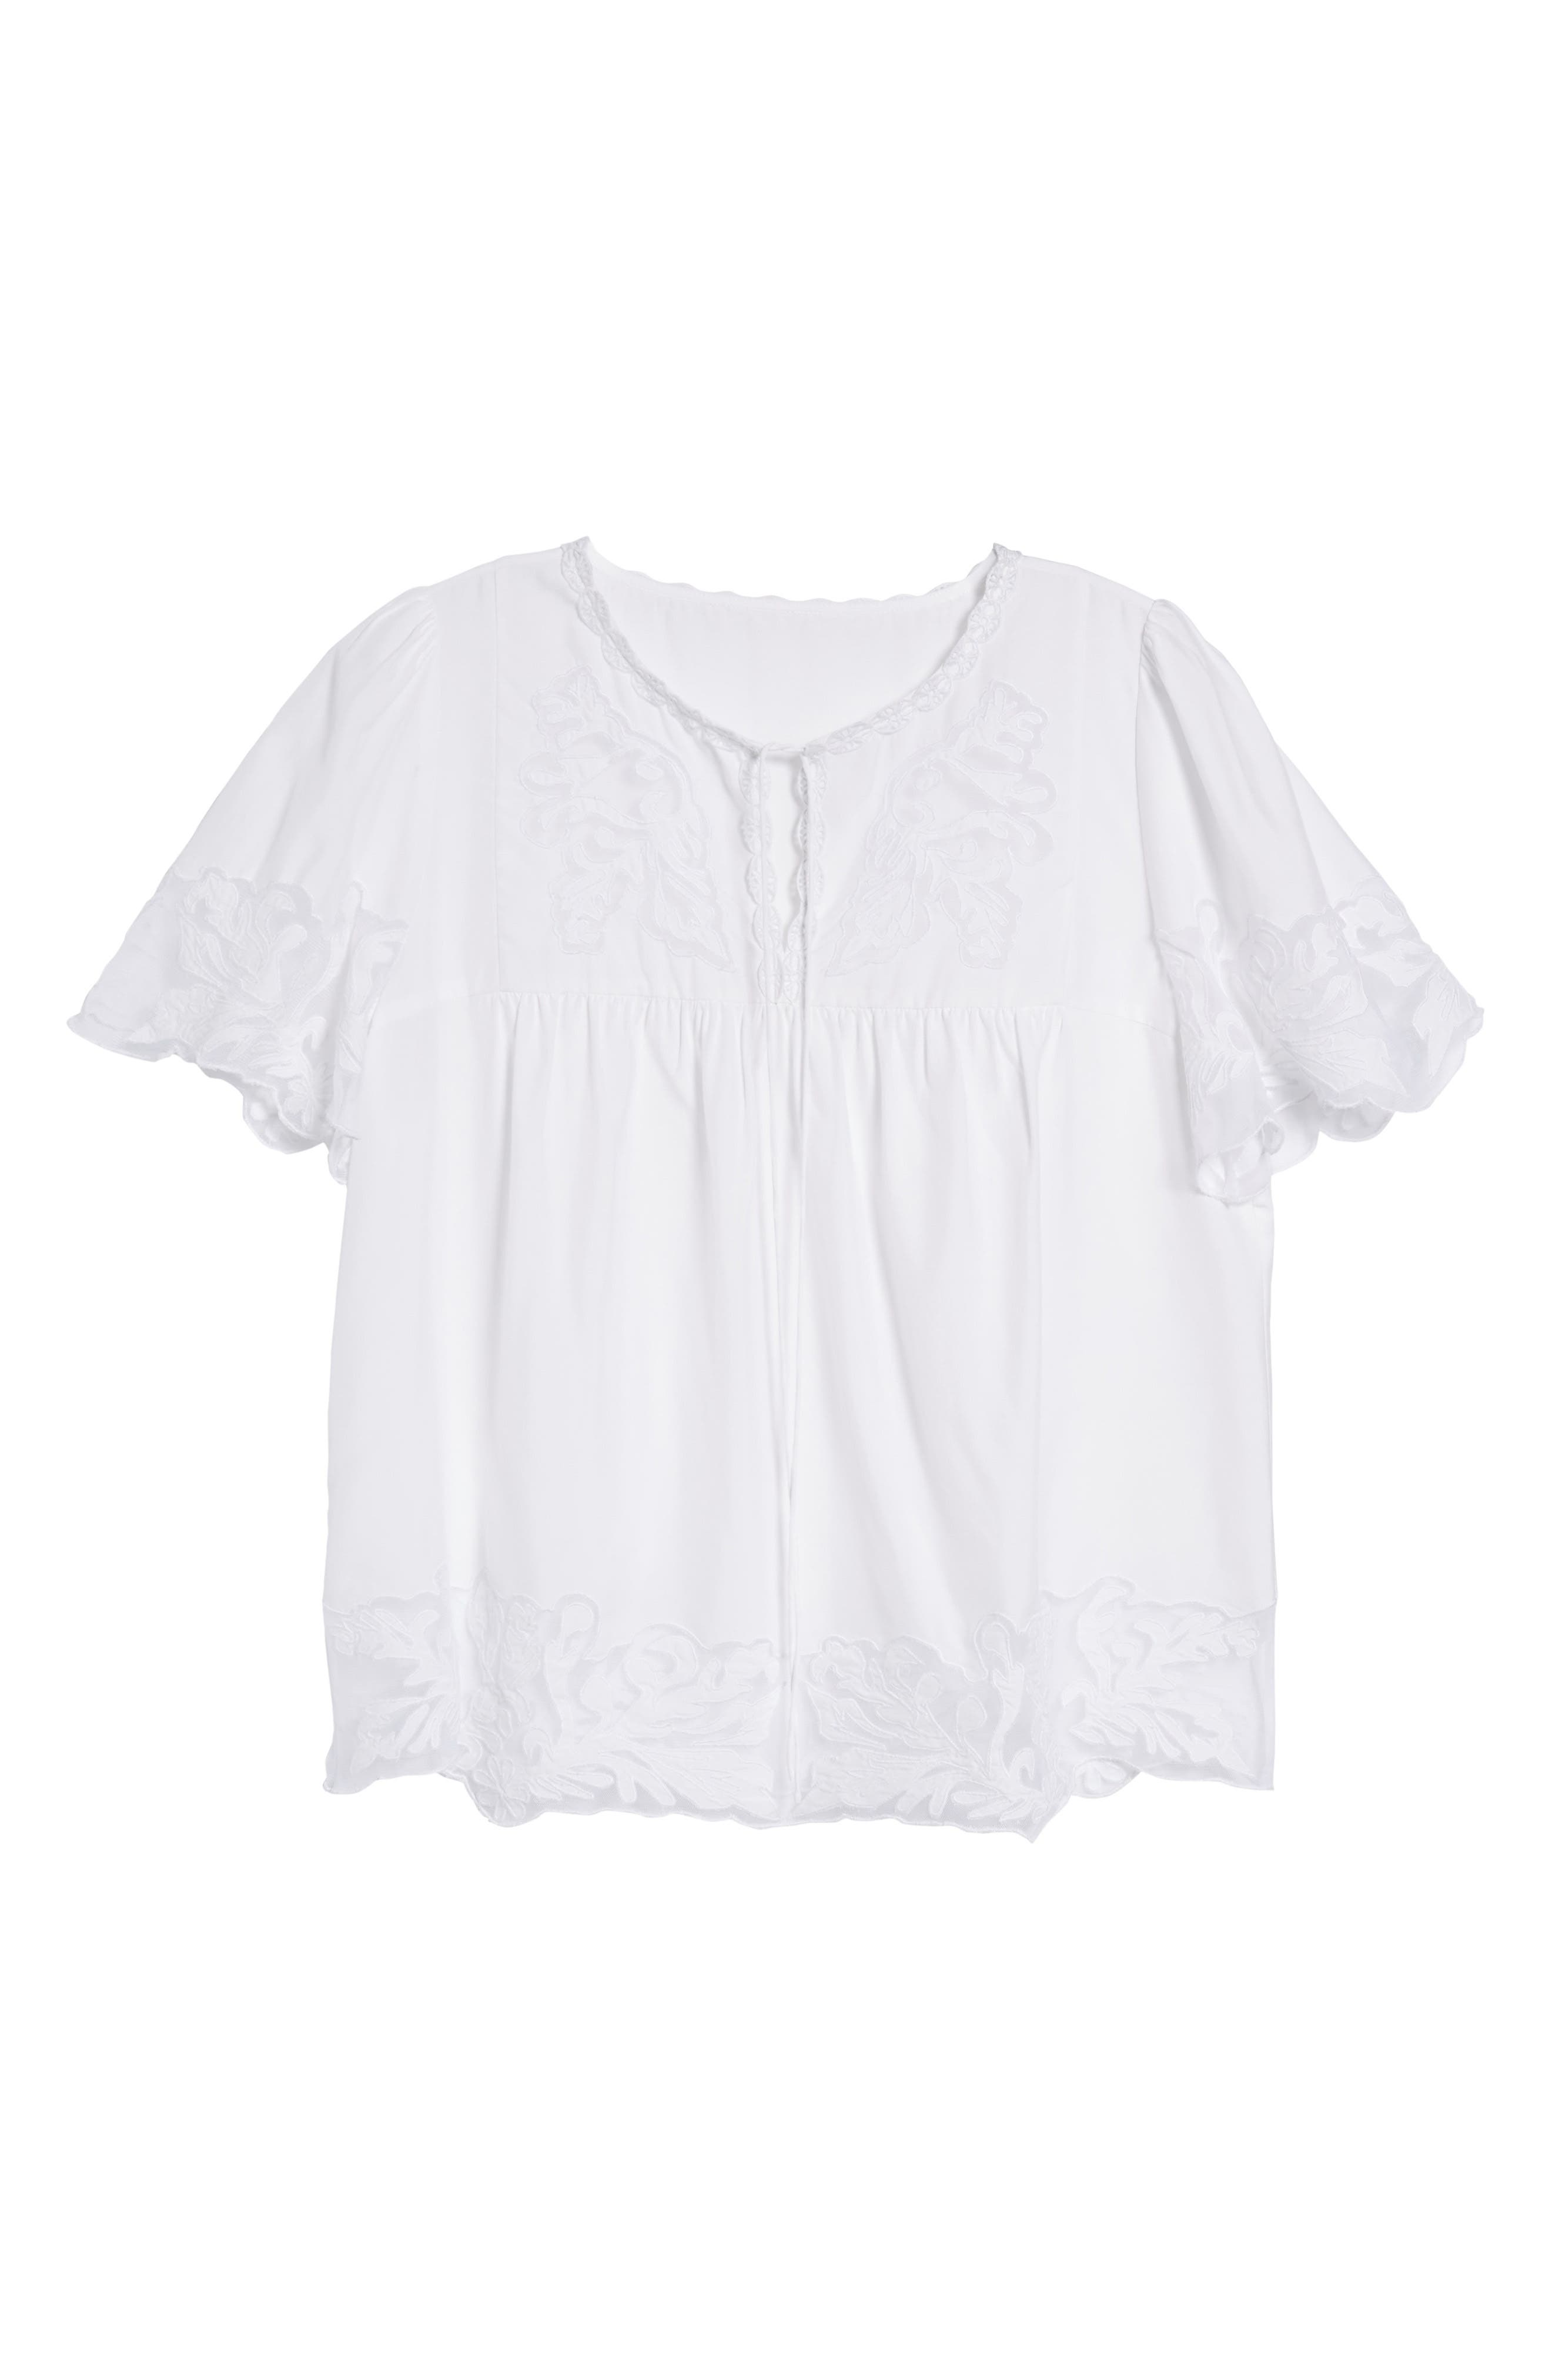 Embroidered Appliqué Top,                             Alternate thumbnail 6, color,                             White